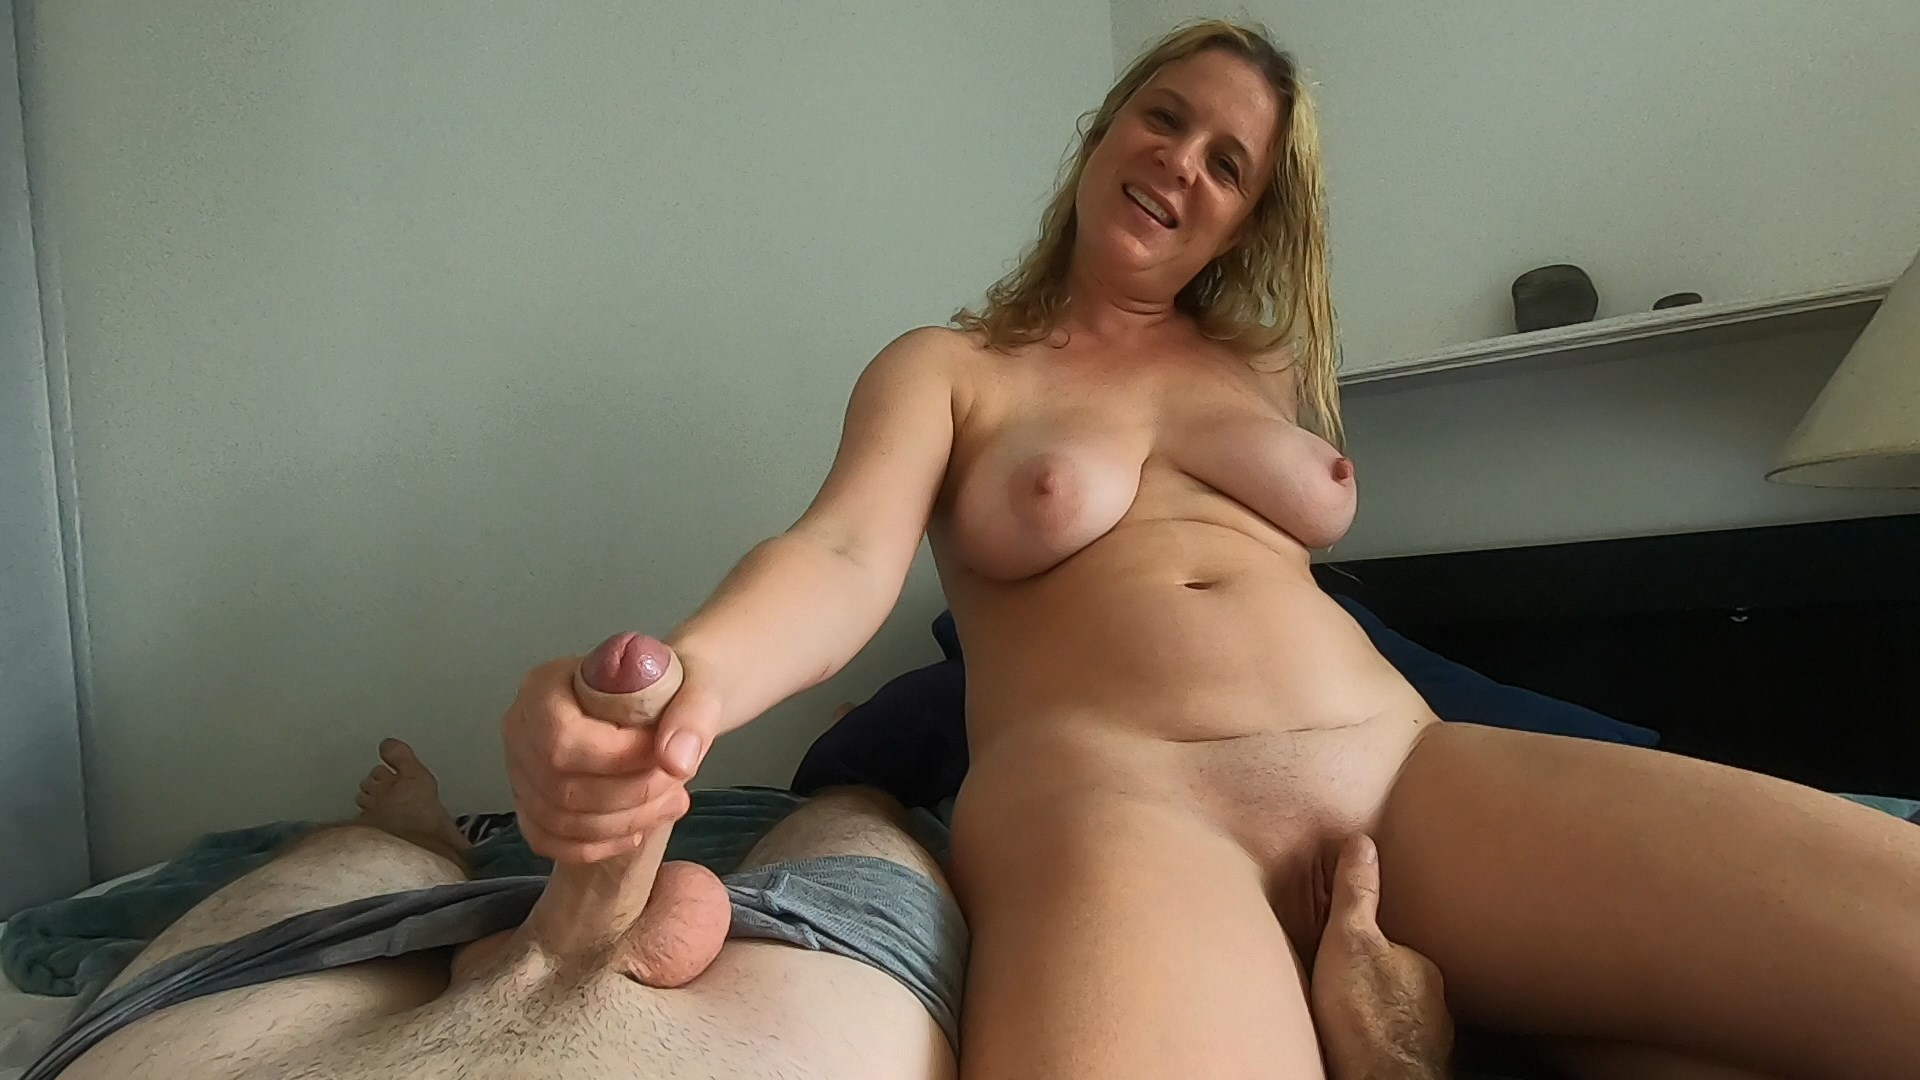 Erin Electra - Your stepmom knows you want to fuck her